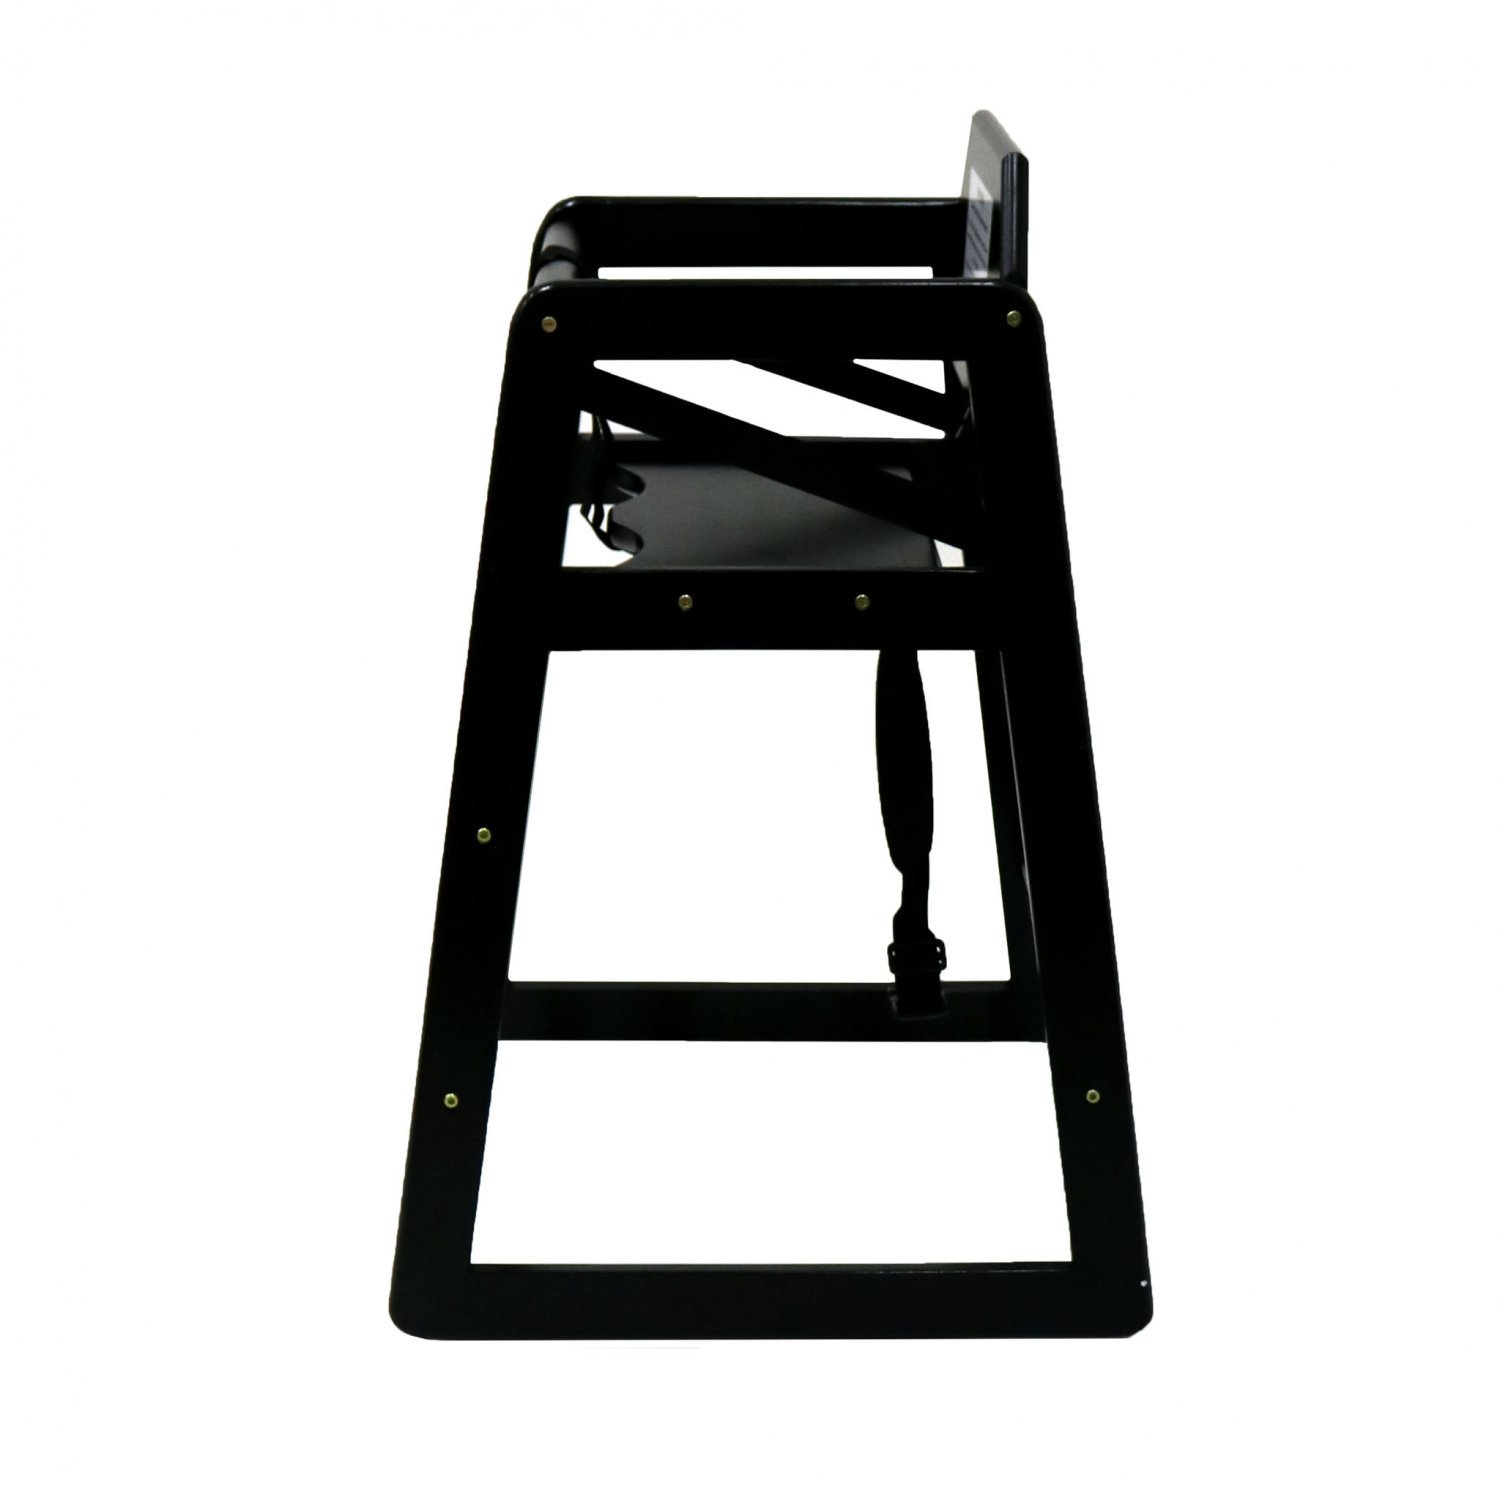 wooden baby high chairs uk outdoor bar chair kids black 24 99 oypla stocking